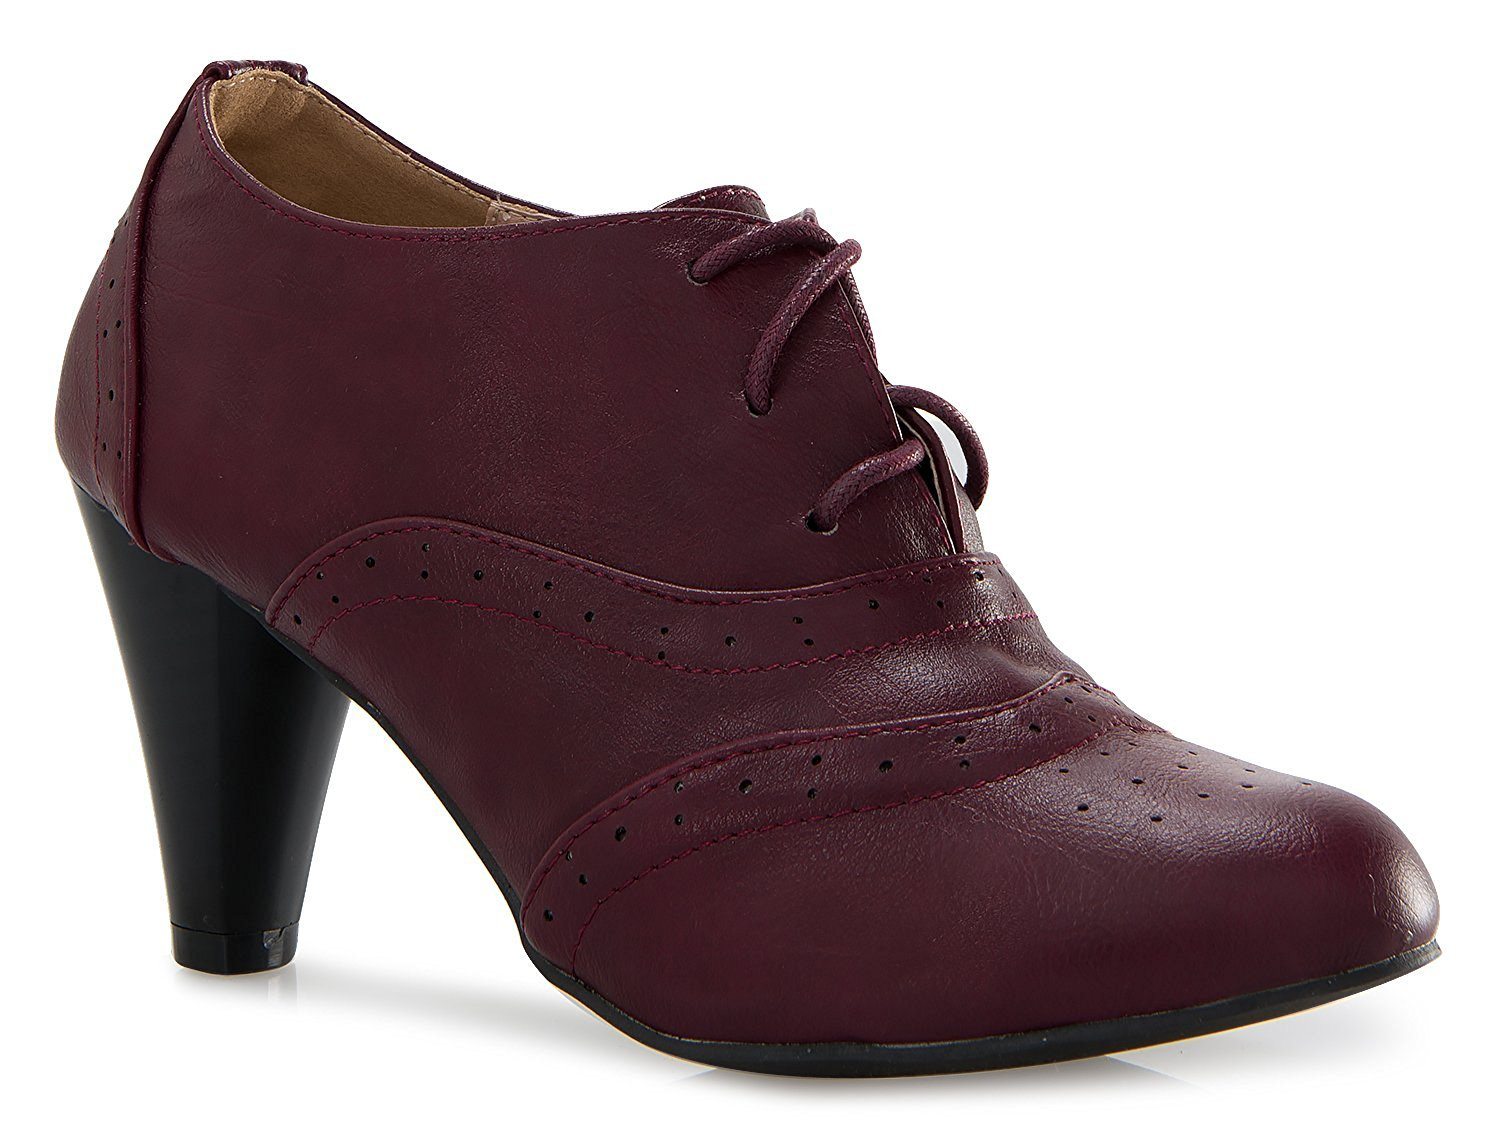 Women's Oxford Shoes Classic Fashion Chunky Heel Bootie Mid-Heel Lace Up Ankle Boots Mary Jane Pumps Burgundy 7